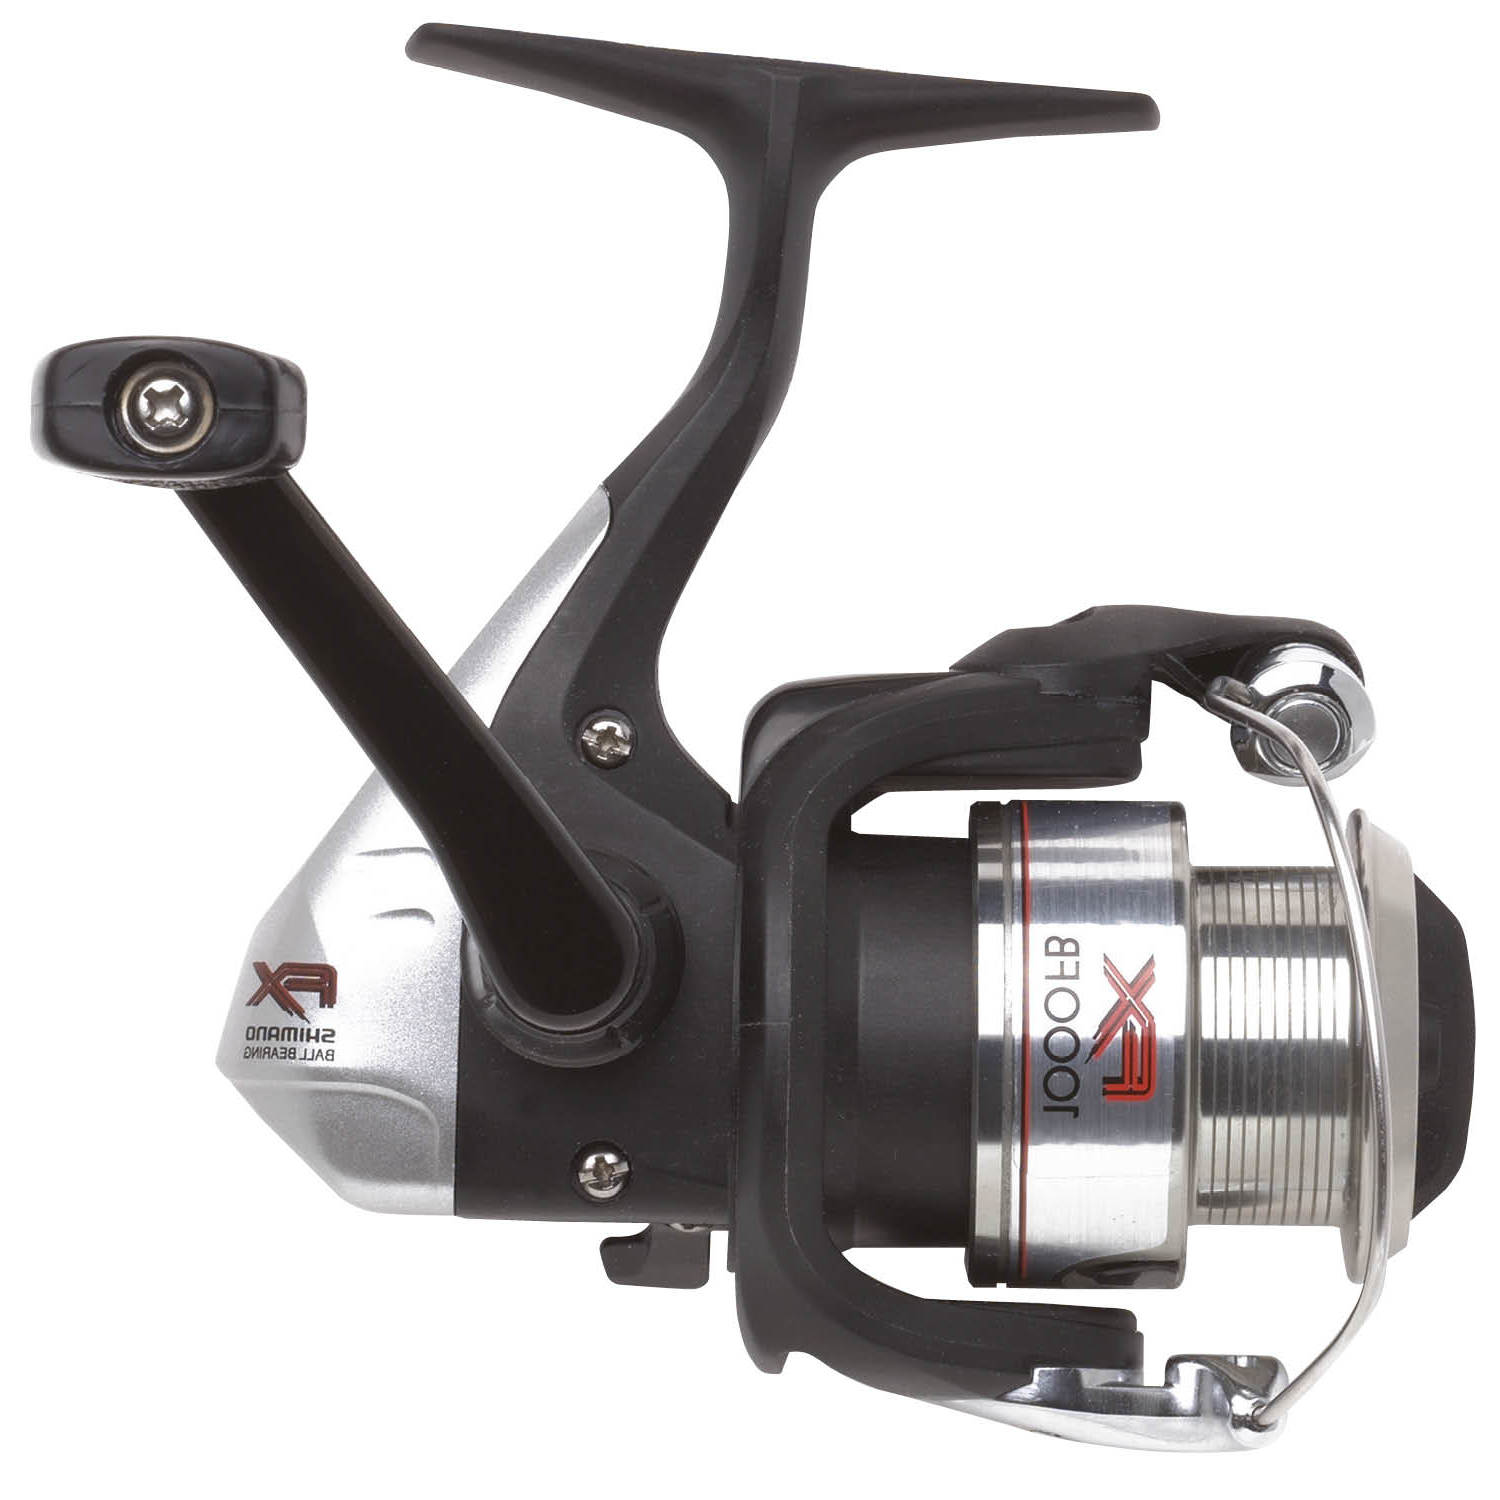 Top 6 inexpensive spinning reels in 2019